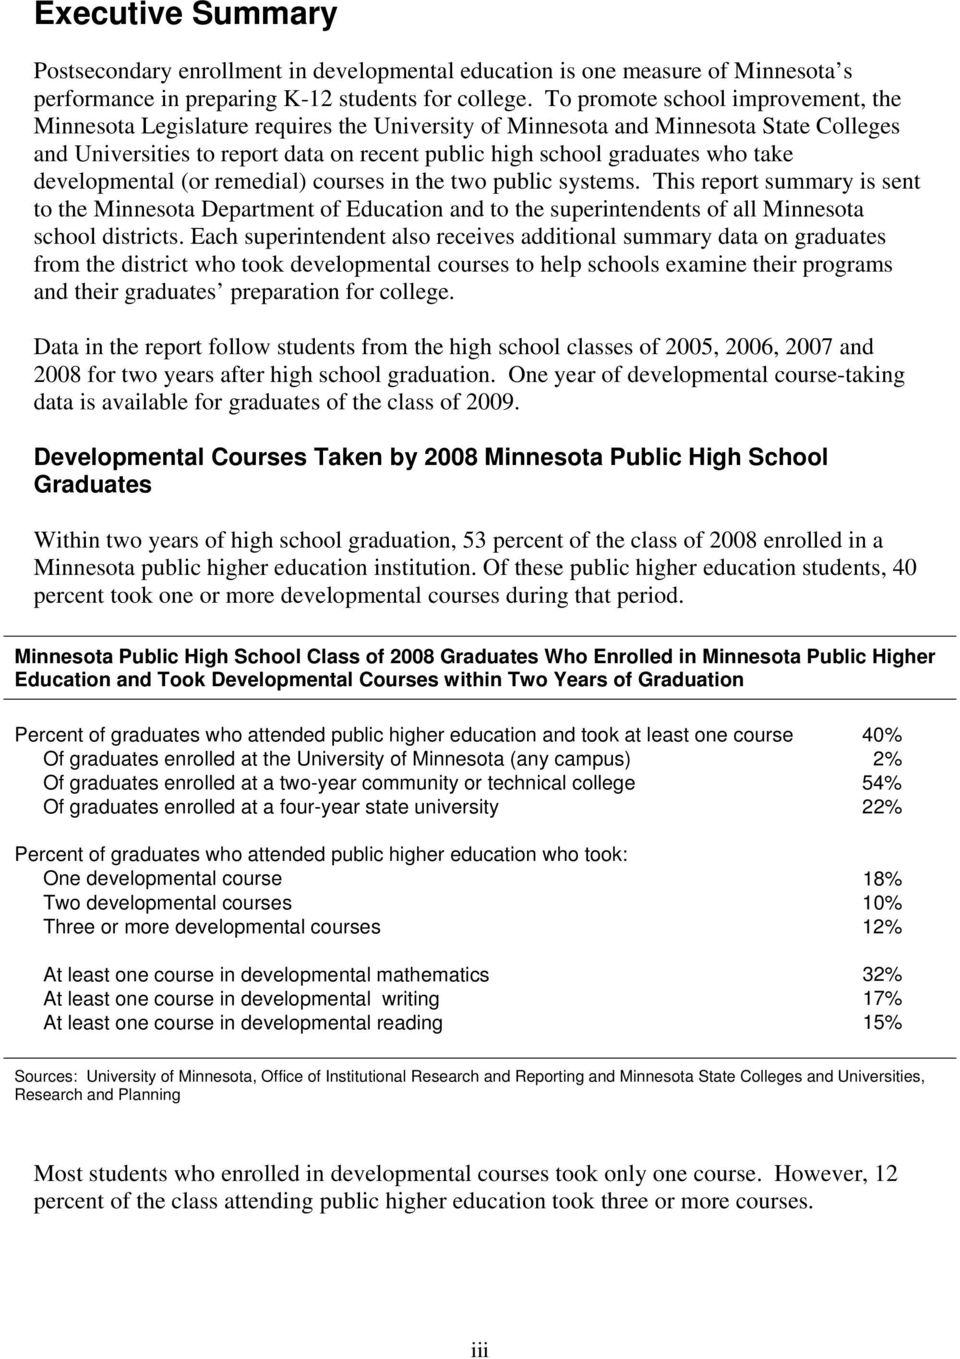 take developmental (or remedial) courses in the two public systems. This report summary is sent to the Minnesota Department of and to the superintendents of all Minnesota school districts.